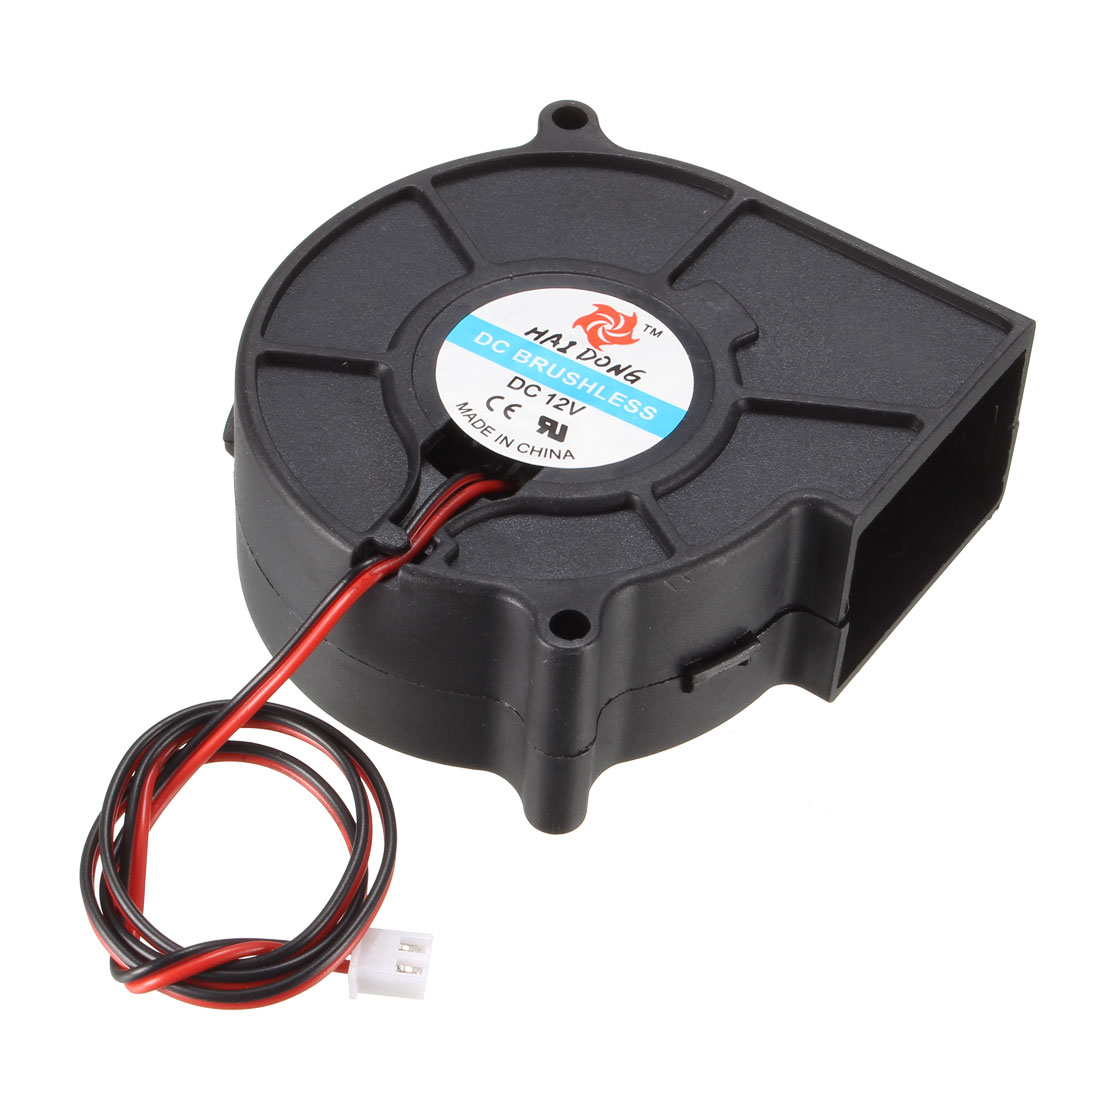 DC12V 75 x 75 x 30mm Brushless Turbo Blower Cooler Cooling Fan 2Pcs for PC Case